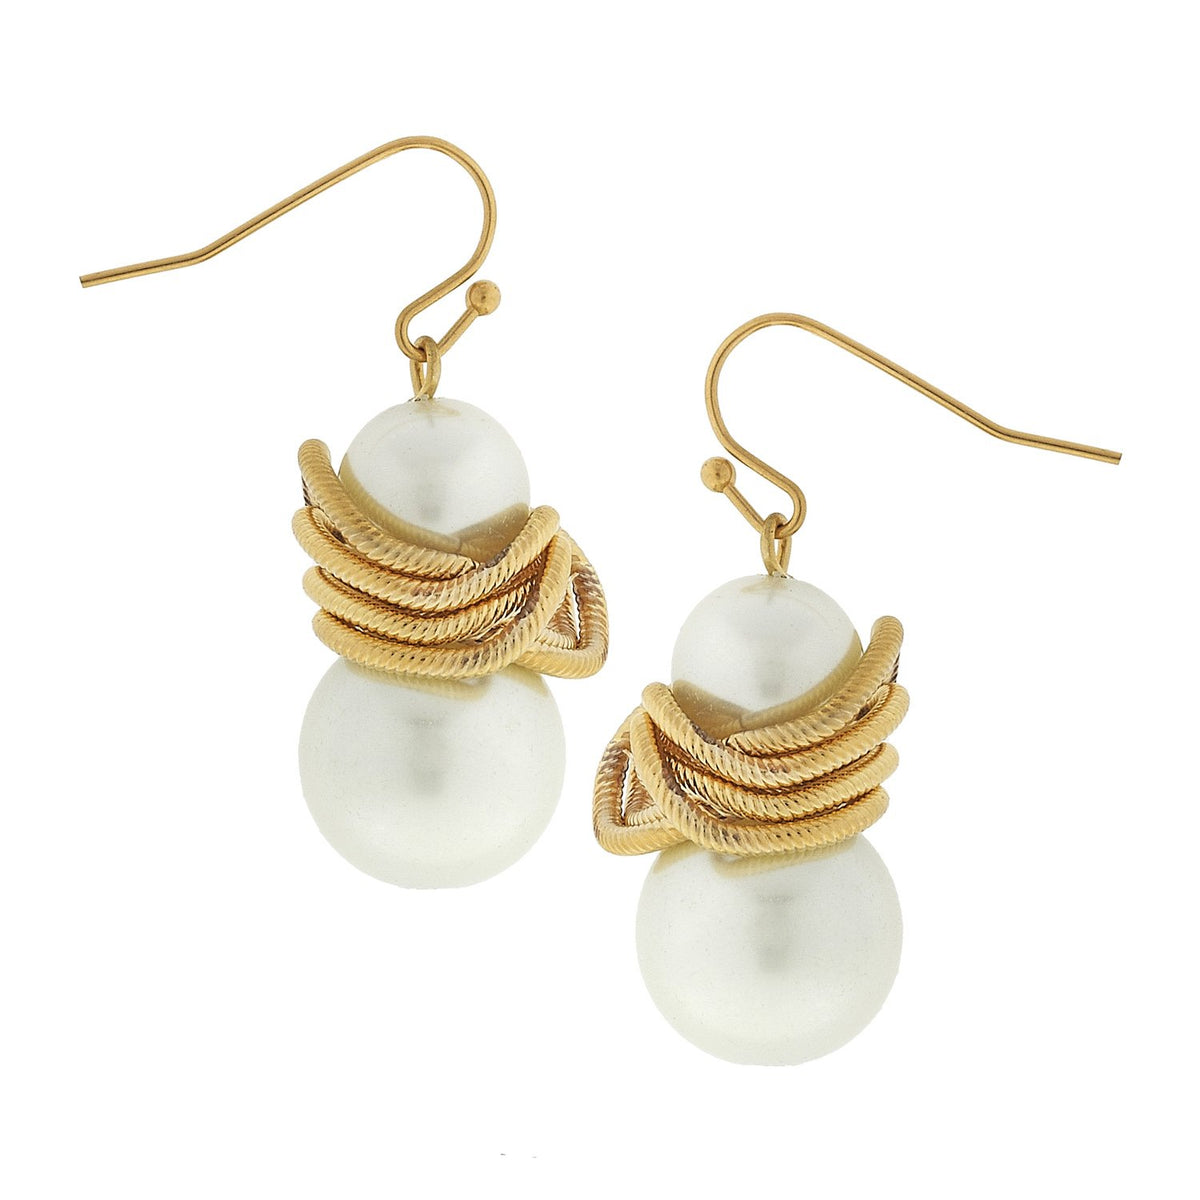 SUSAN SHAW PEARL LINK EARRINGS